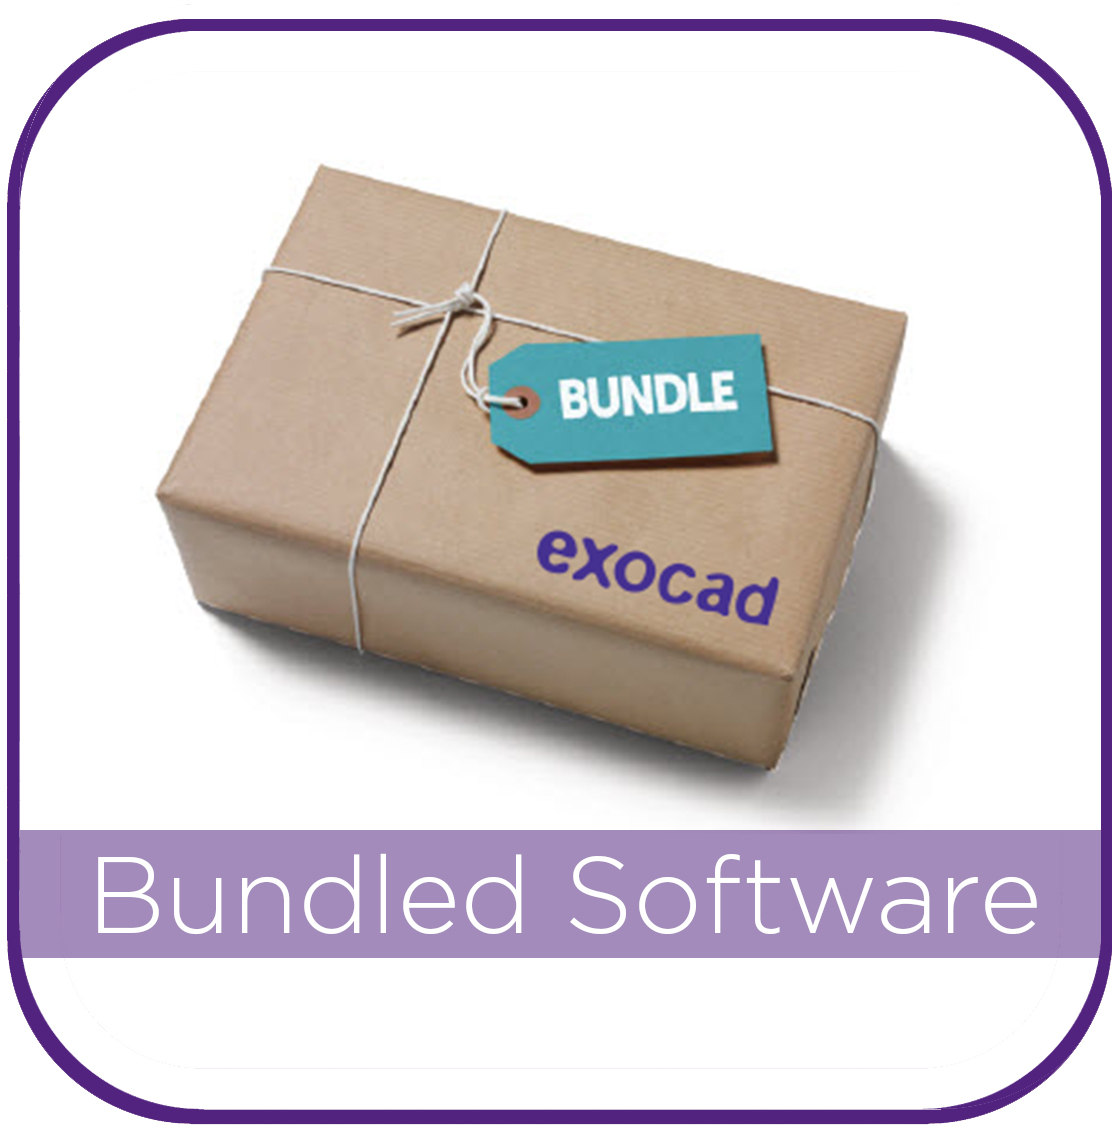 Bundled Software